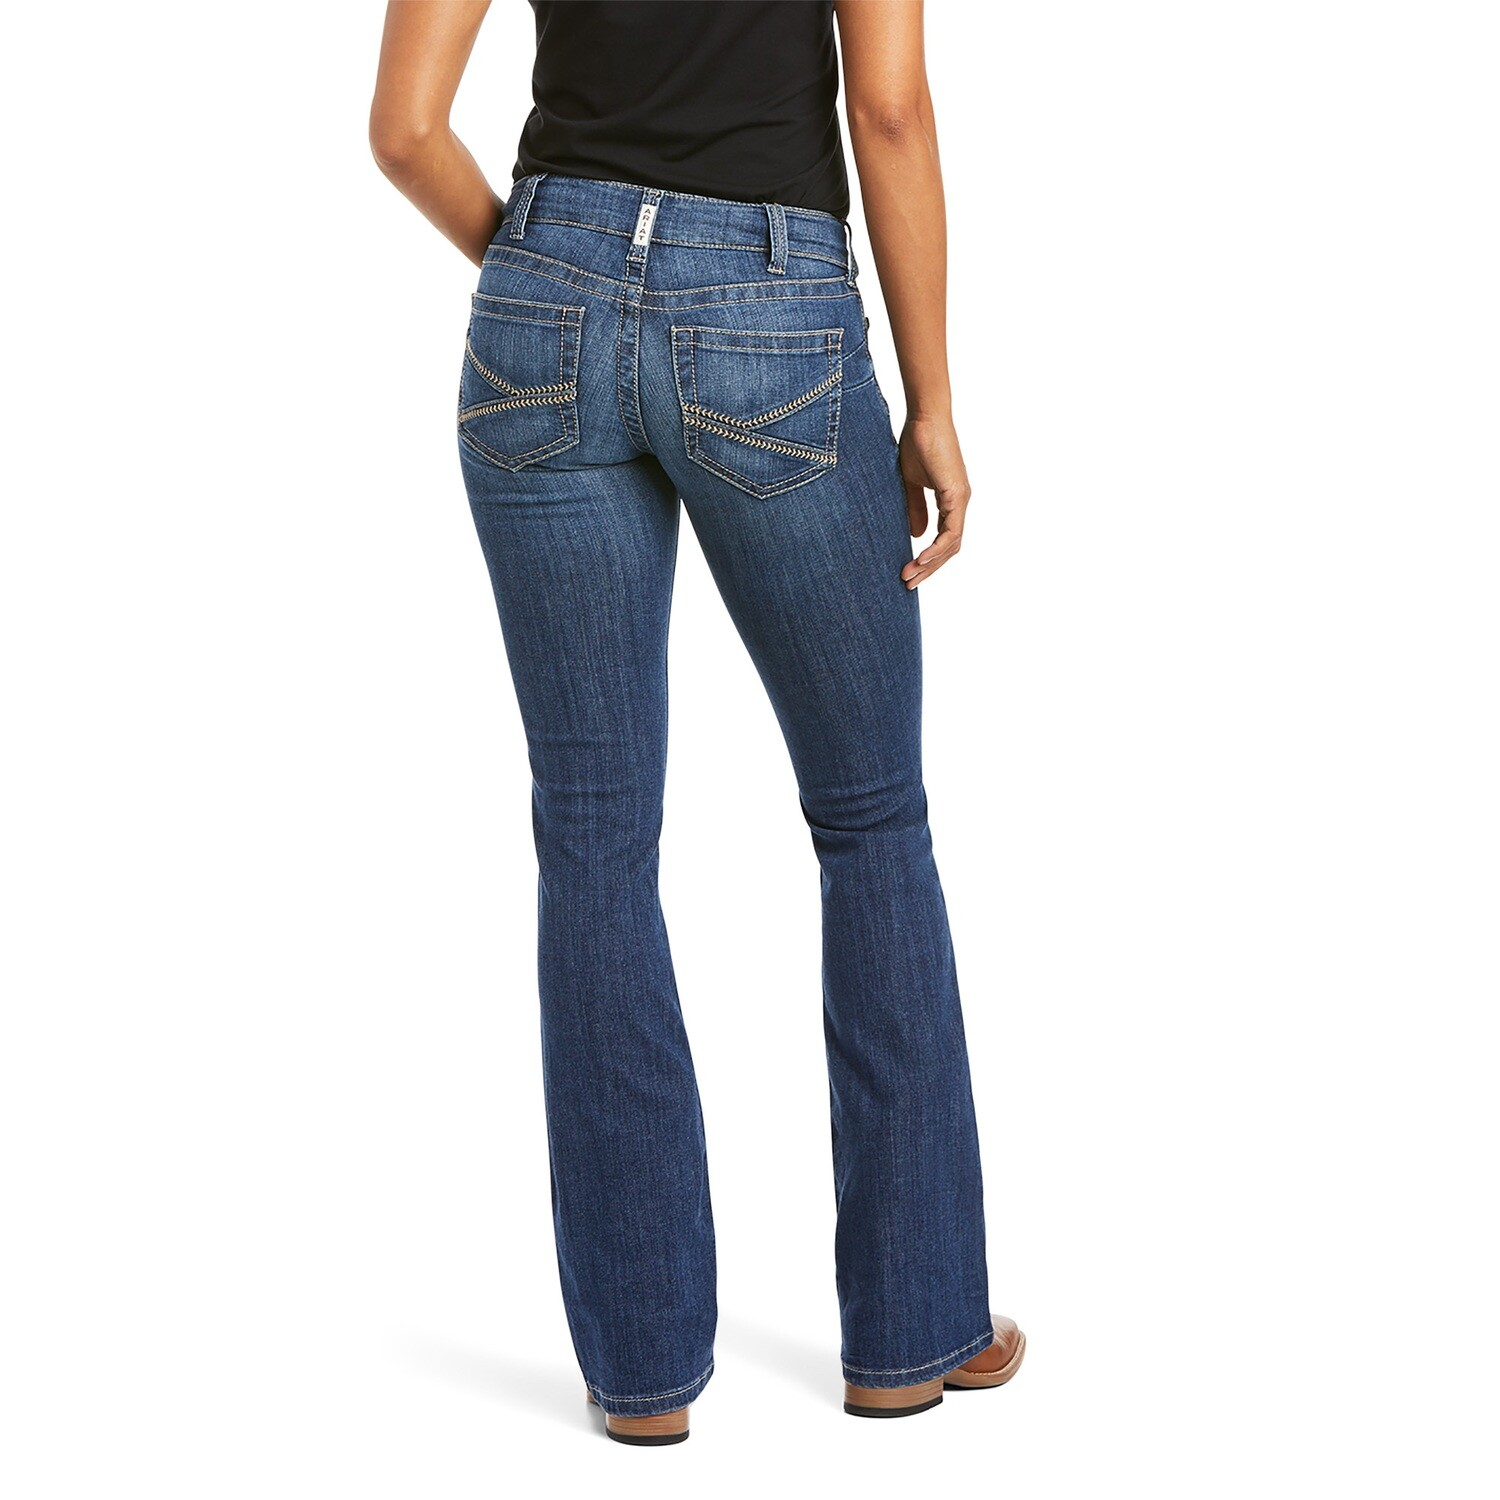 10034659 WMS R.E.A.L MR  LILIANA BOOT JEAN IRVINE